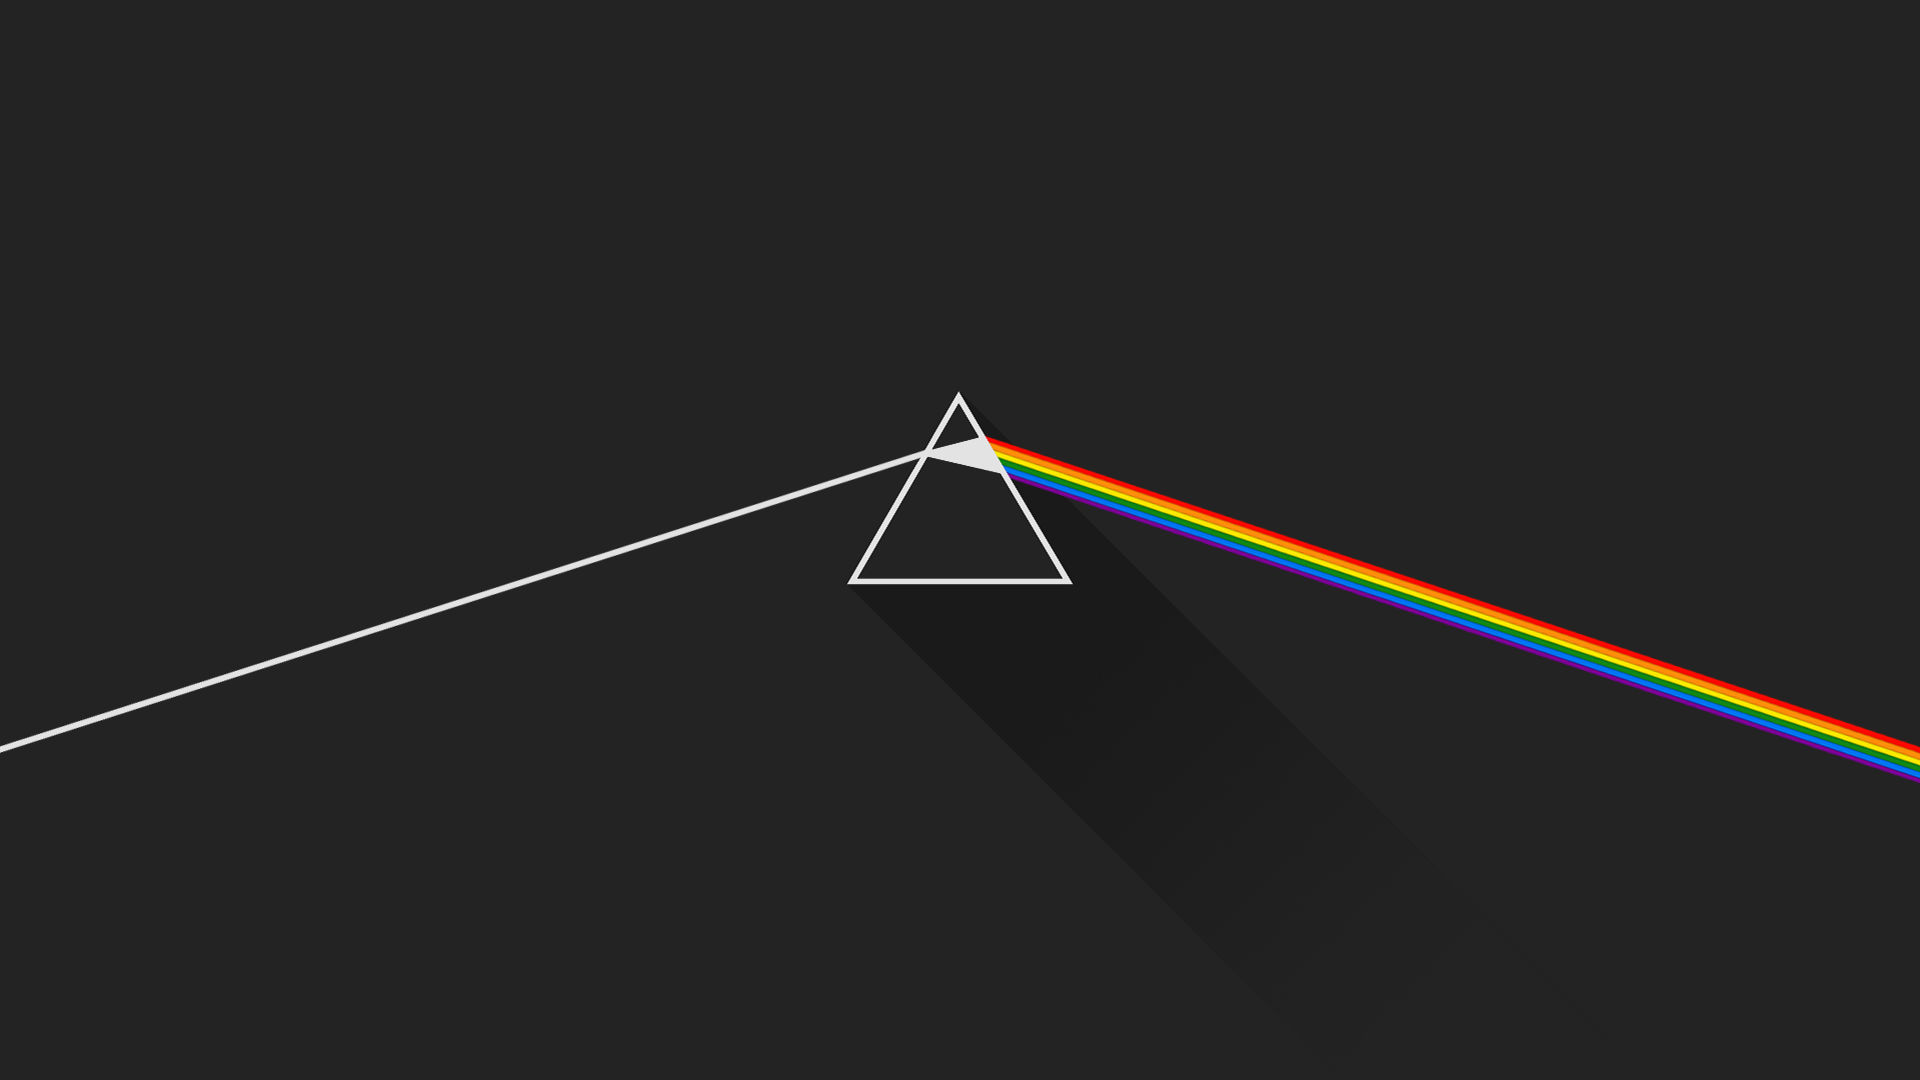 Download The Dark Side Of The Moon Wallpaper Gallery 1920x1080